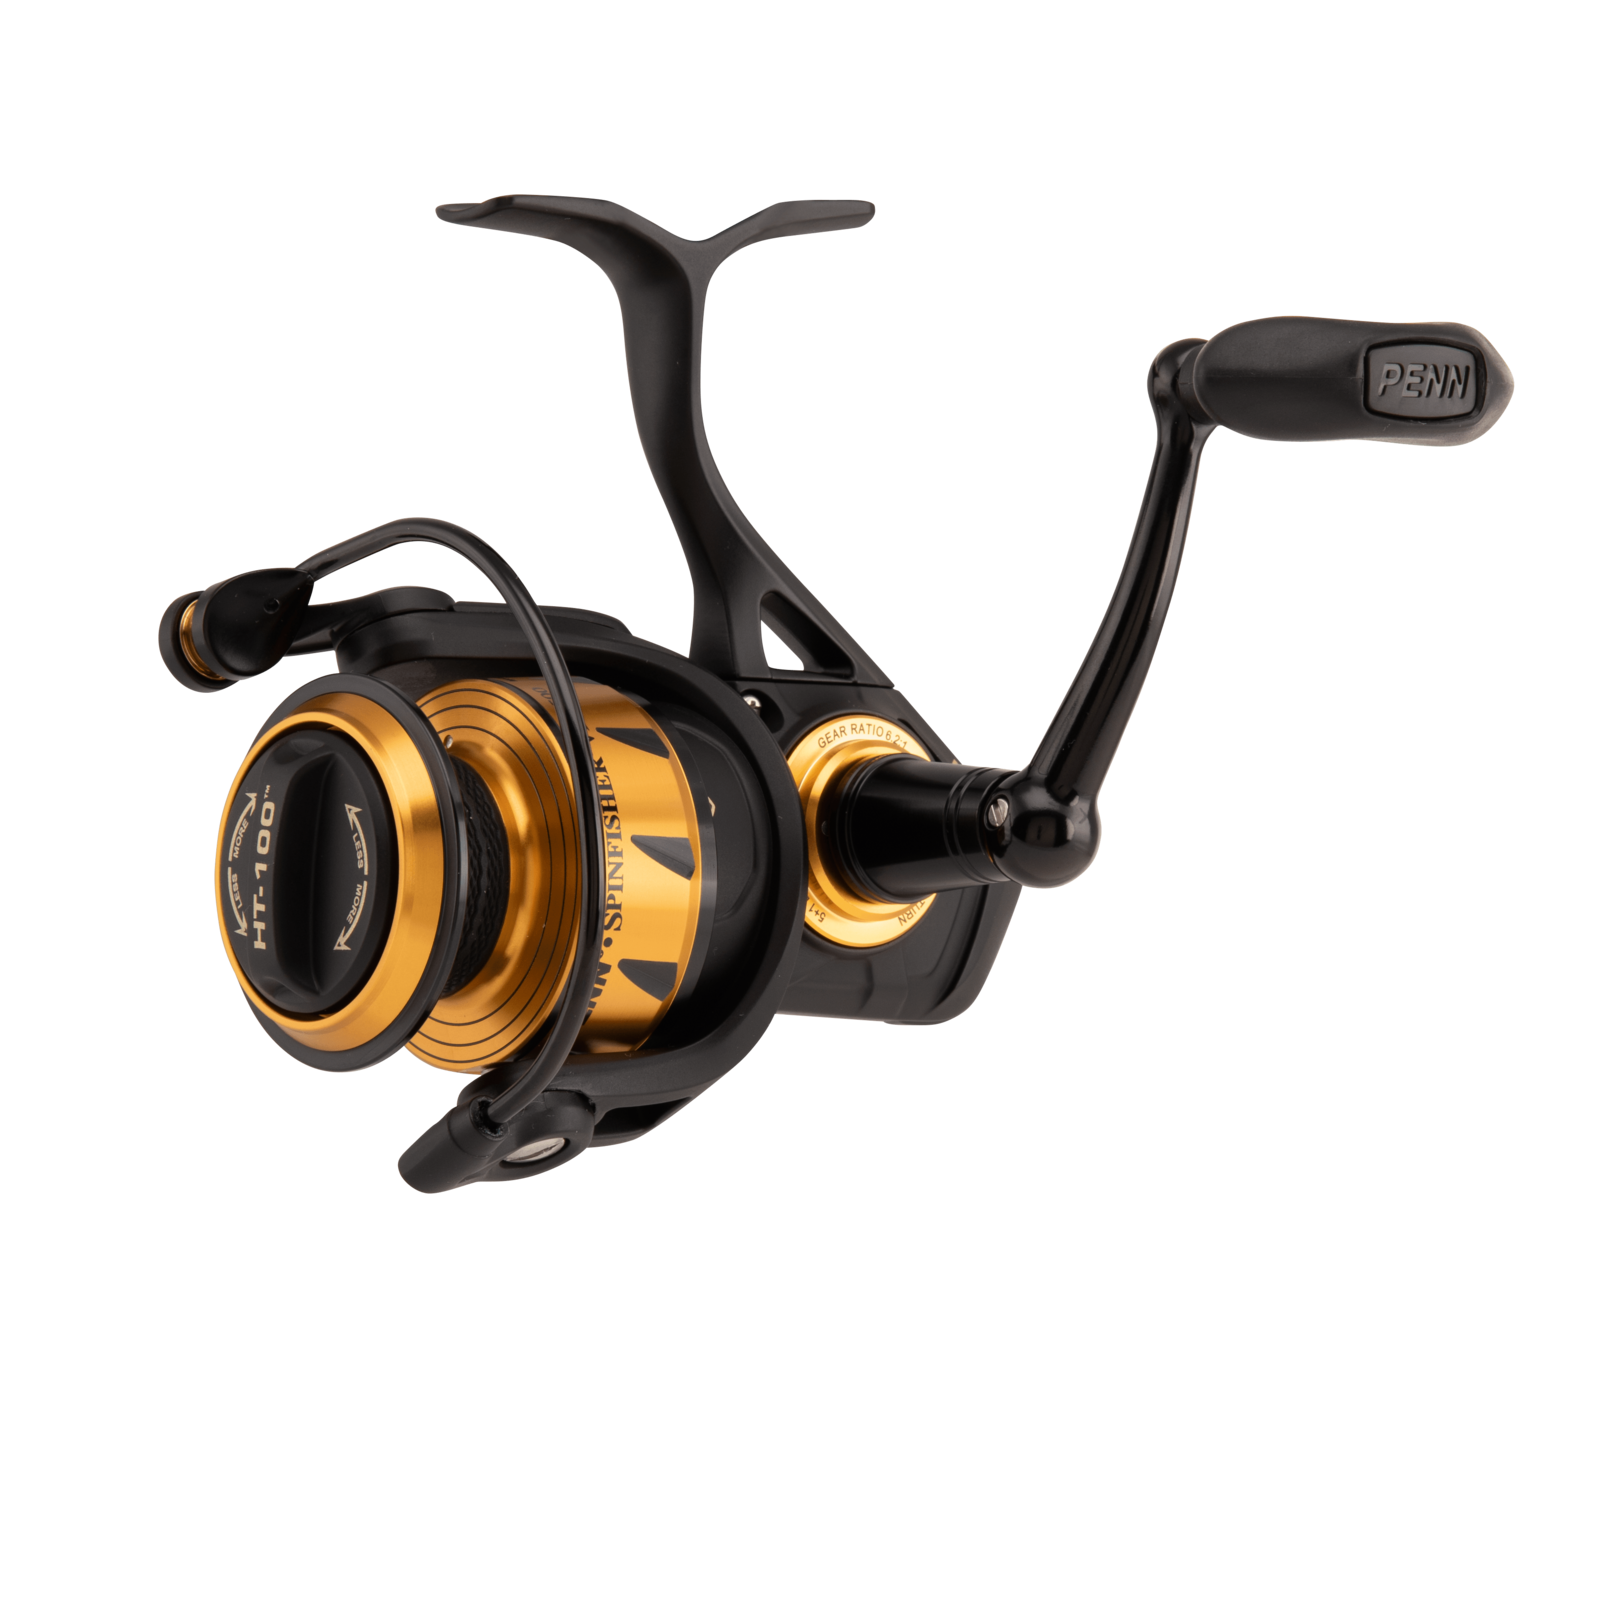 Penn Spinfisher VI SSV 5500 NEW Spinning Fishing Reel SSVI4500- NEW 5500 2018 9fd64a